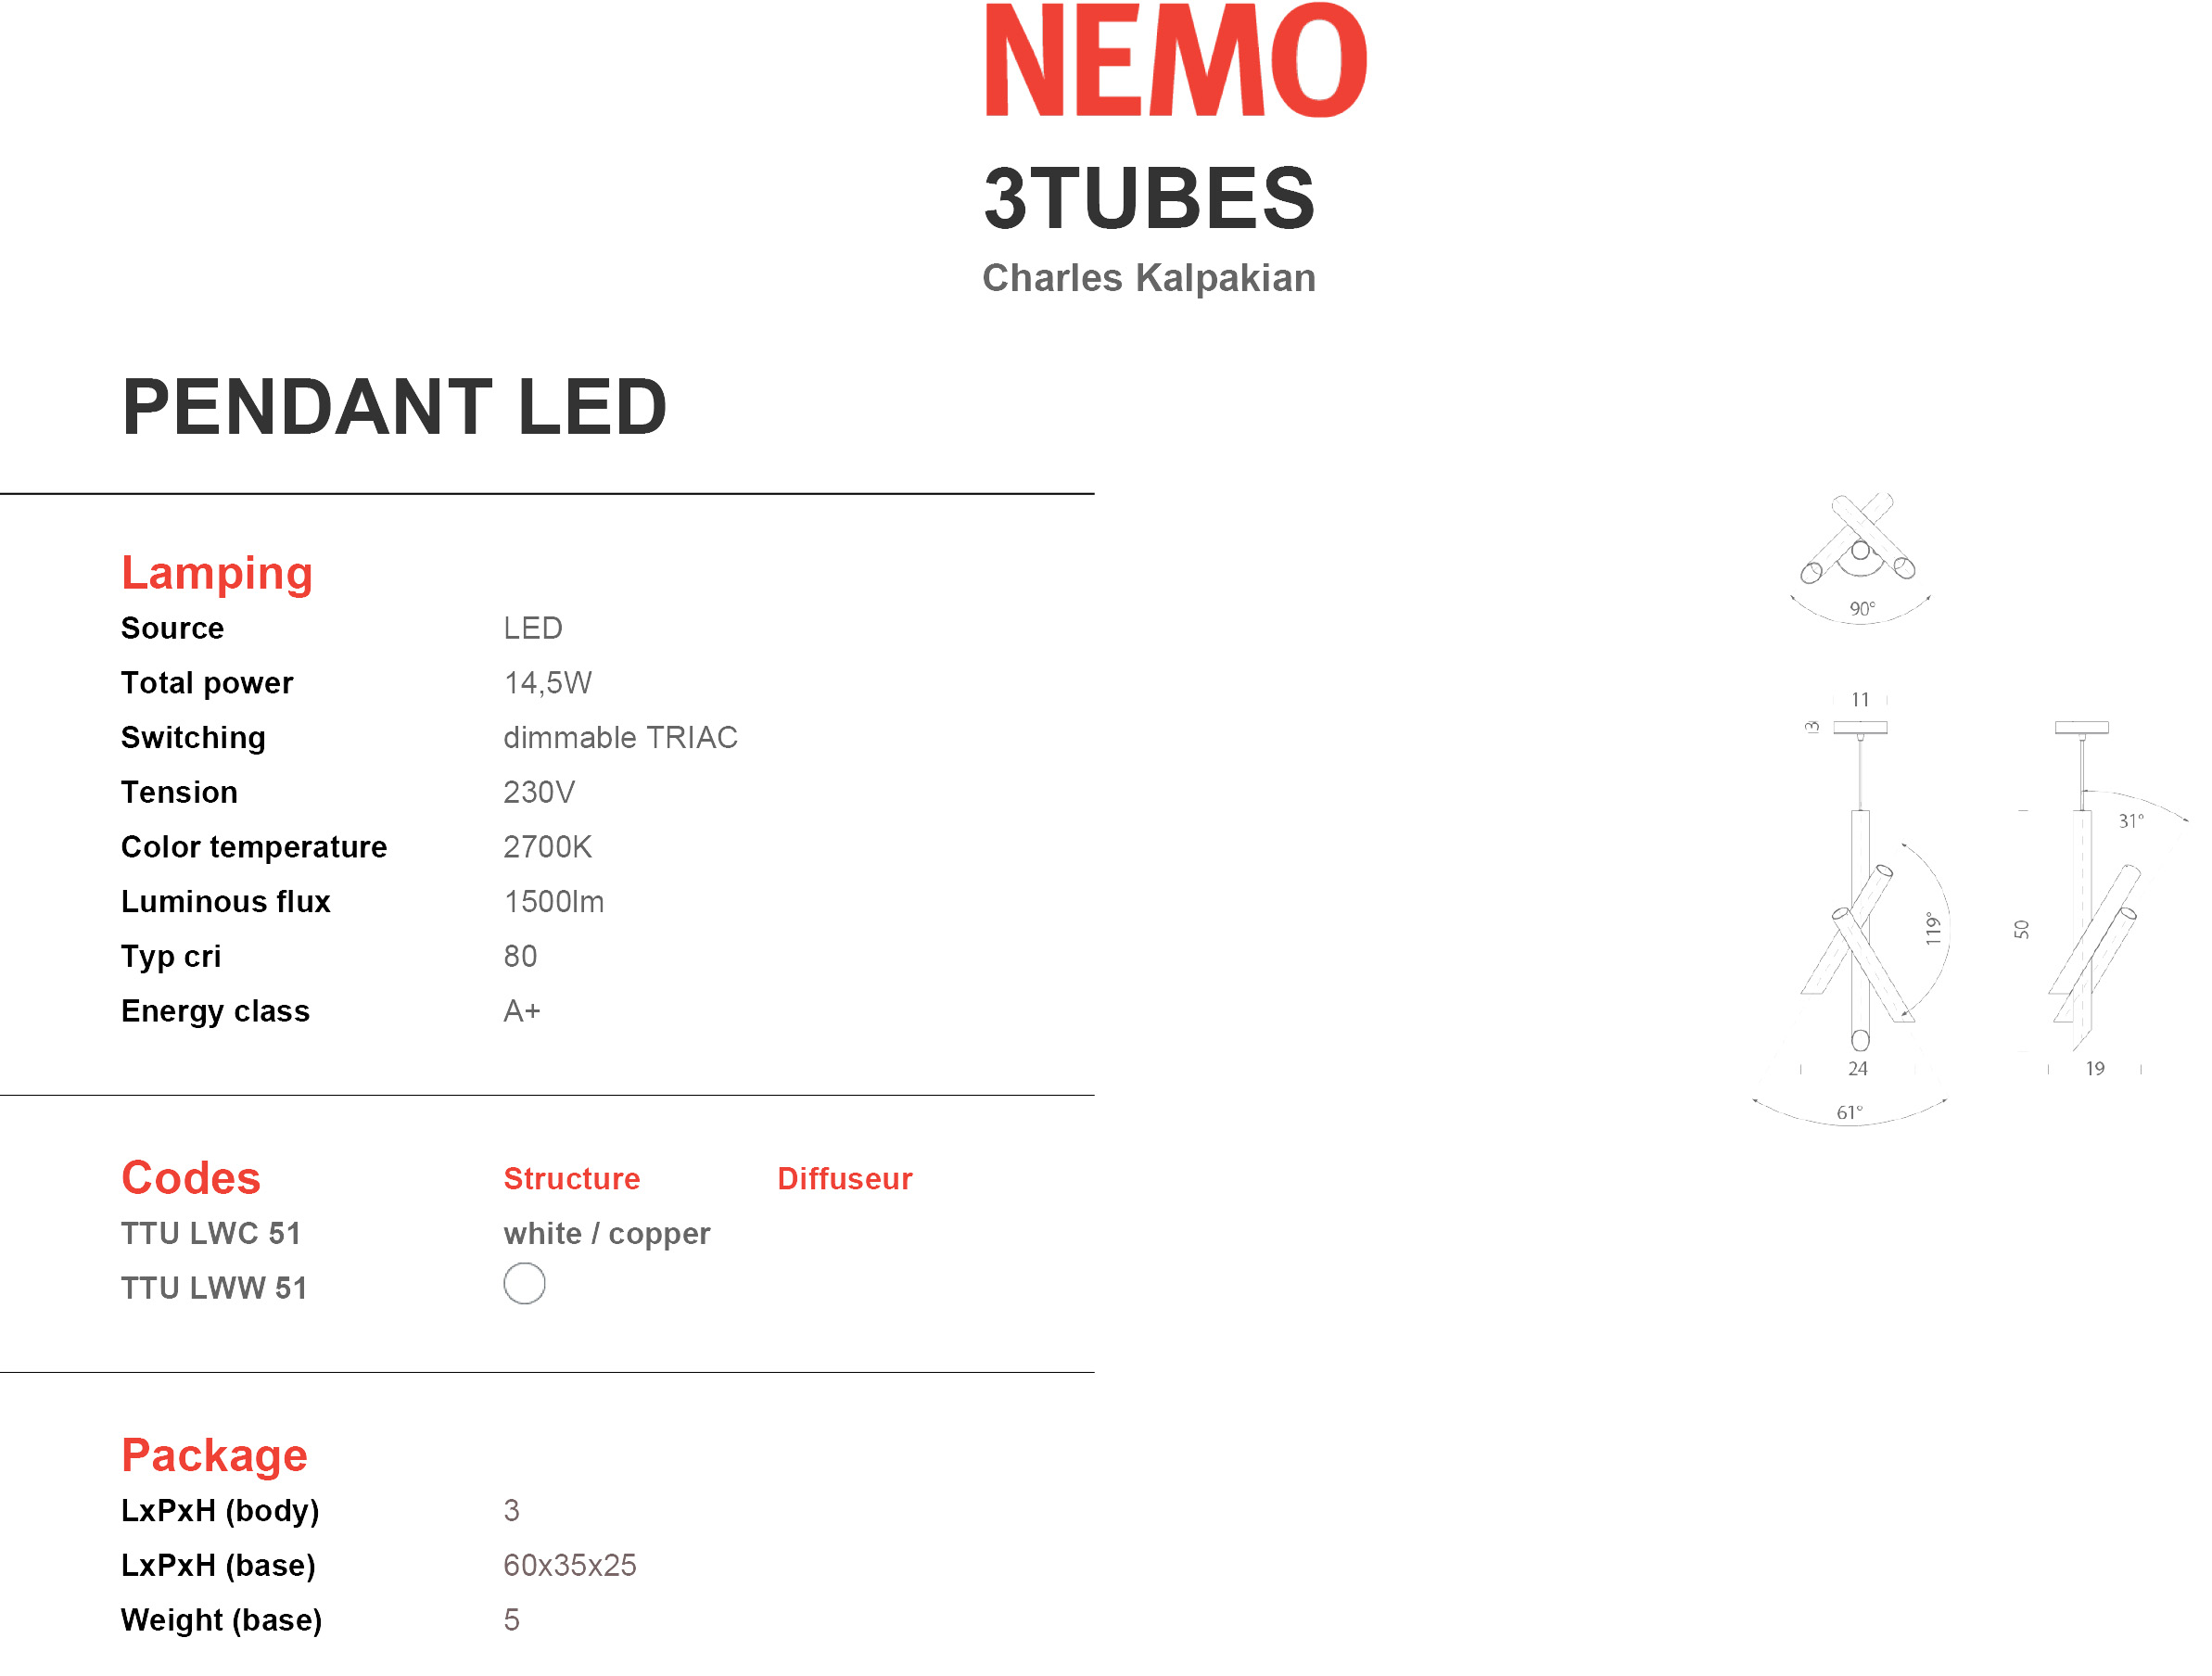 Nemo Lighting 3 Tubes Tech